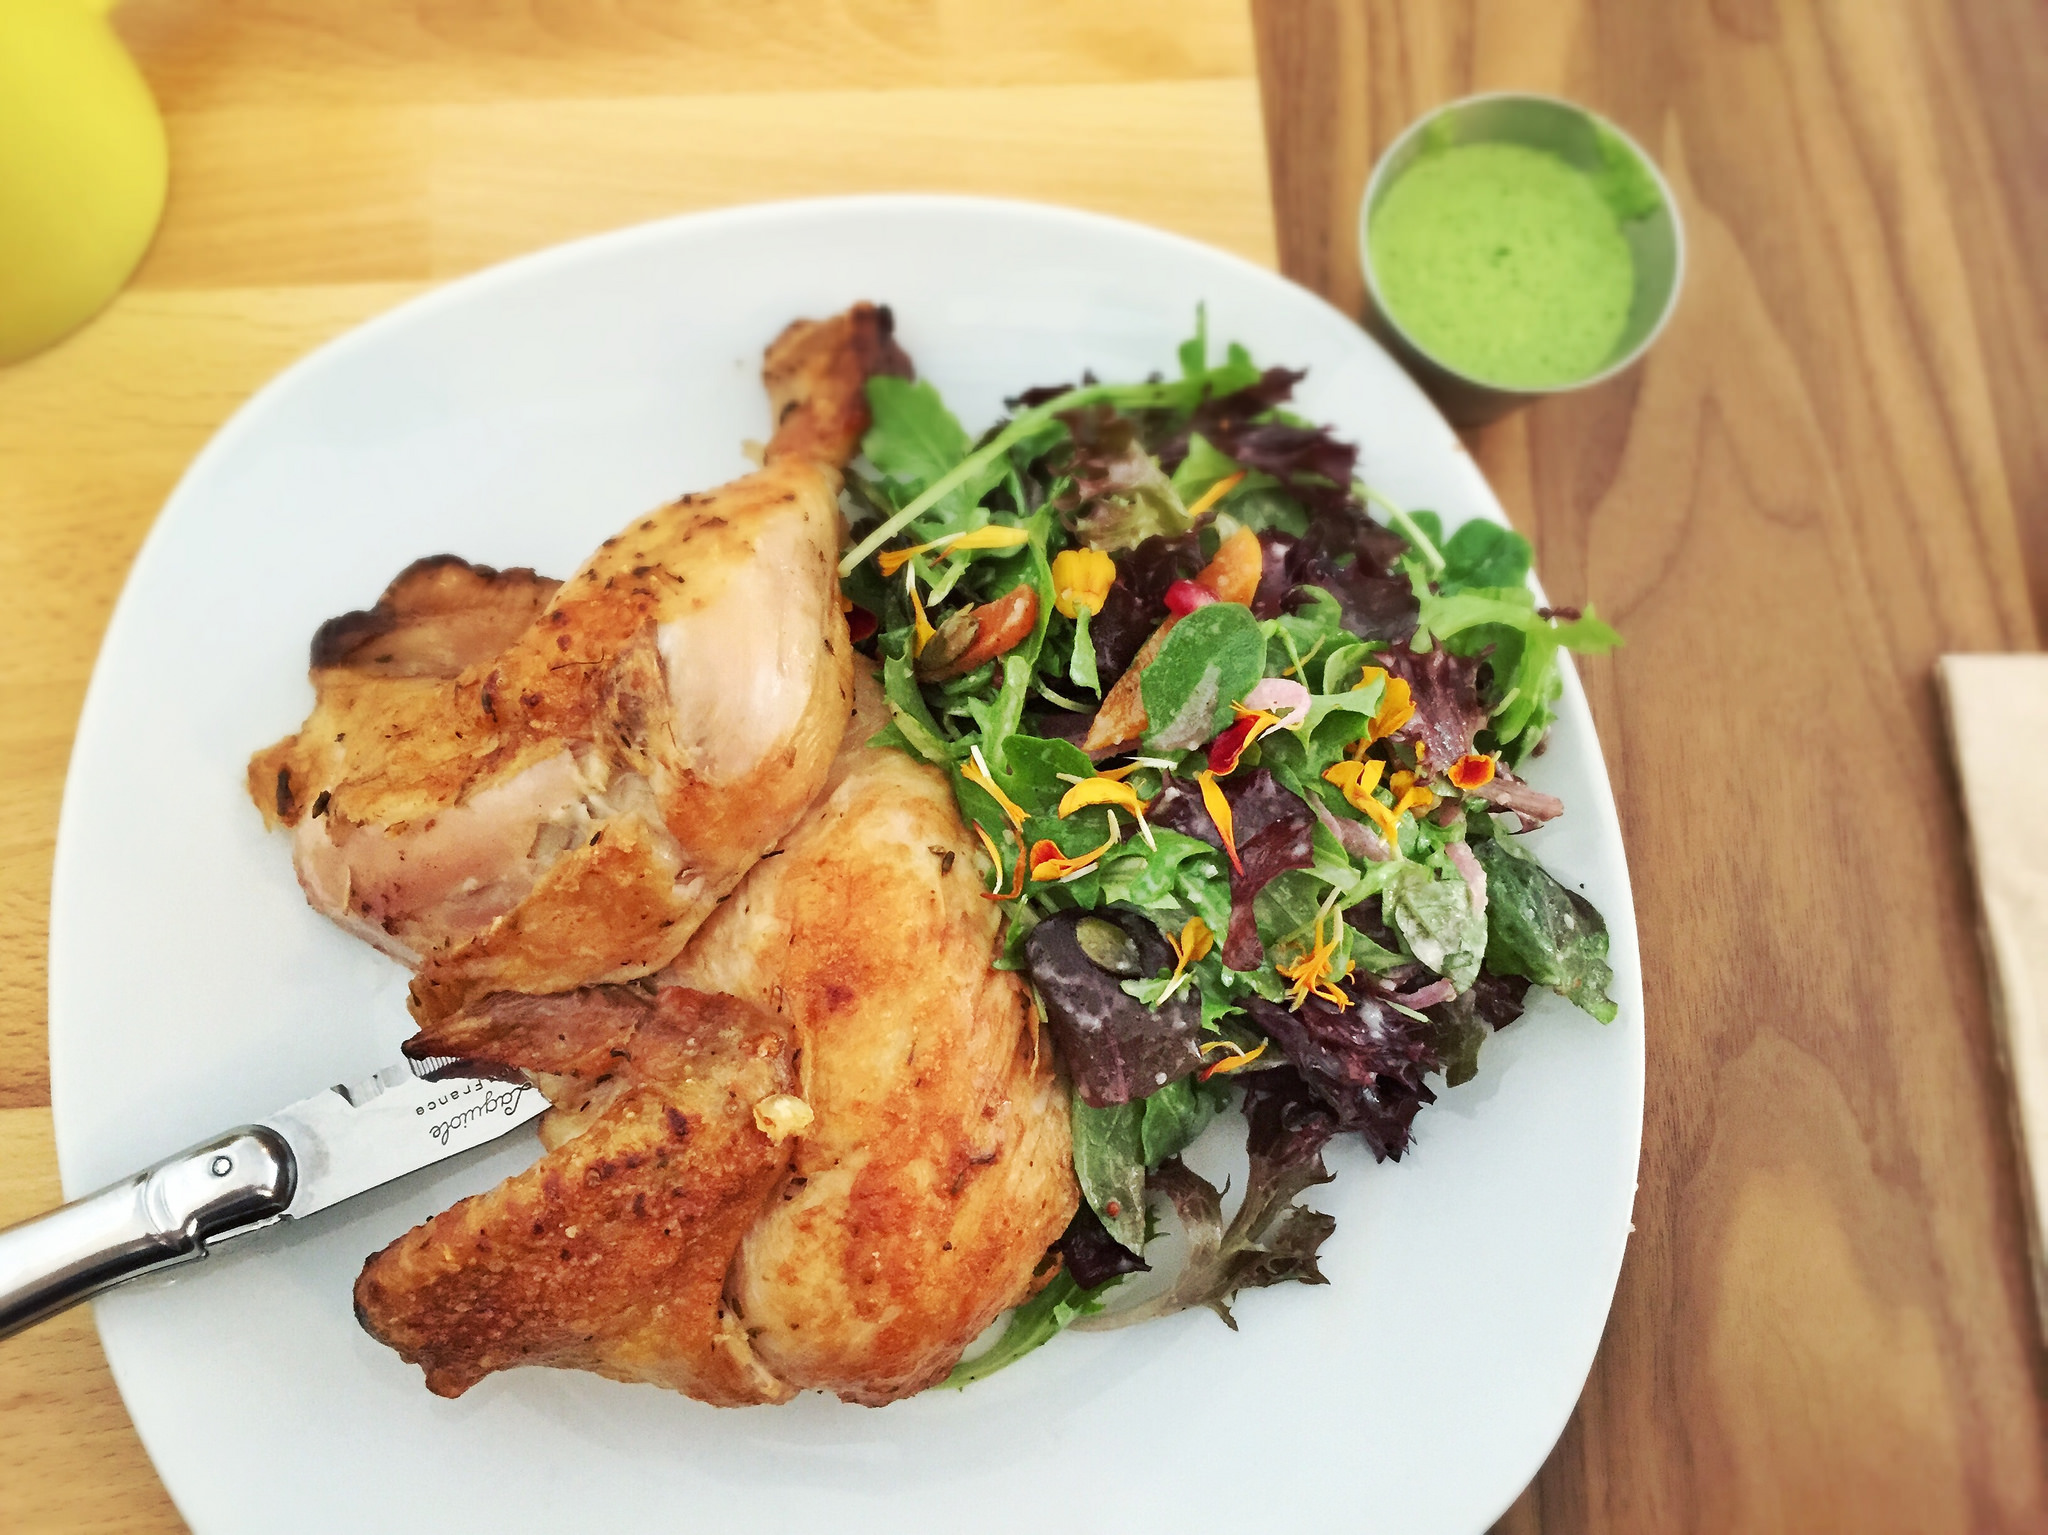 Rotisserie chicken with salad | © T.Tseng/Flickr